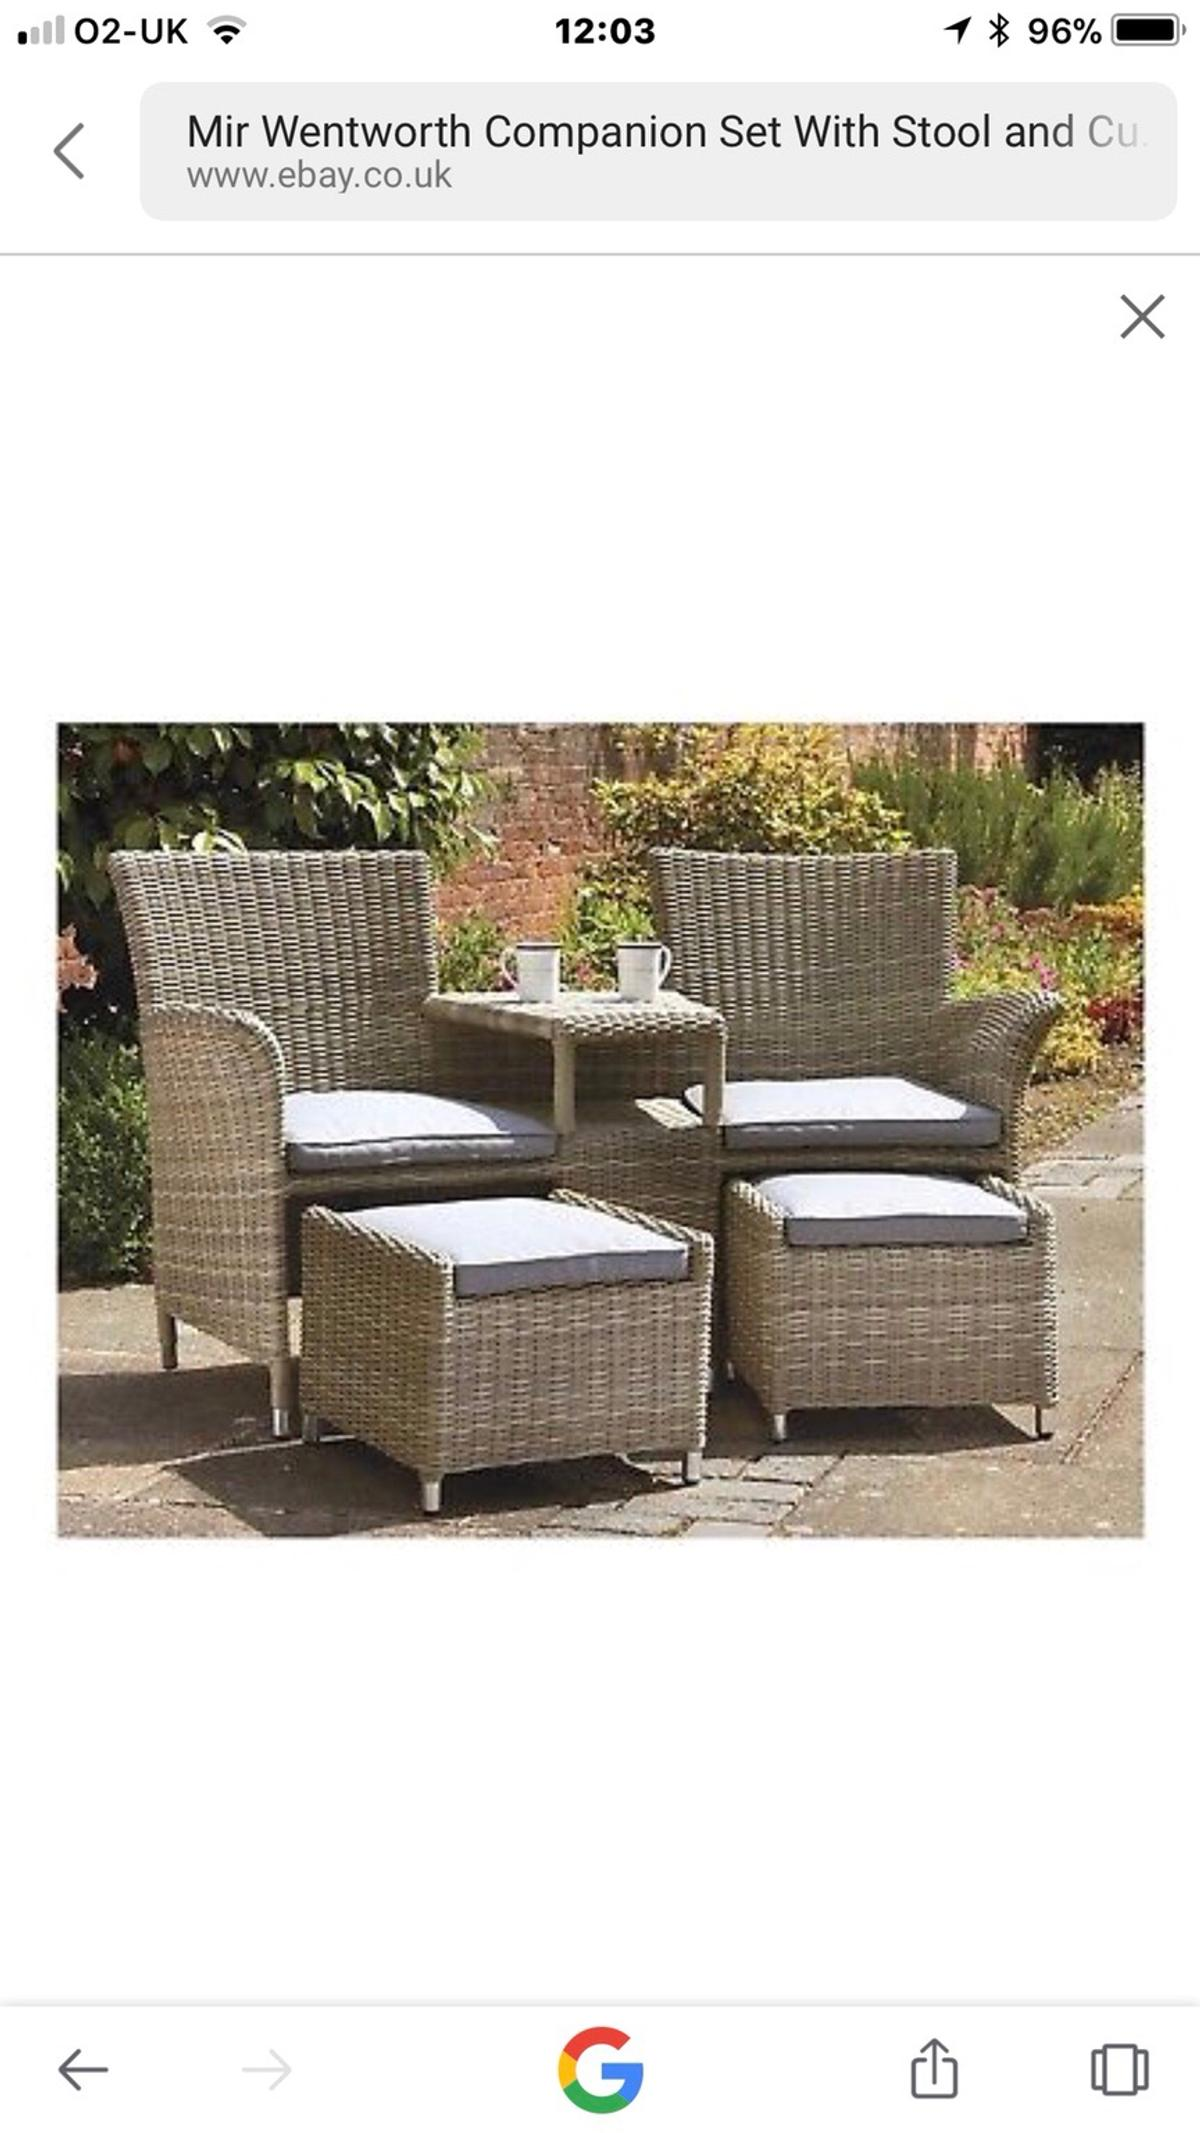 John Lewis Rattan Companion Set With Footstoo In Dy104lj Wocestershire For 299 00 For Sale Shpock